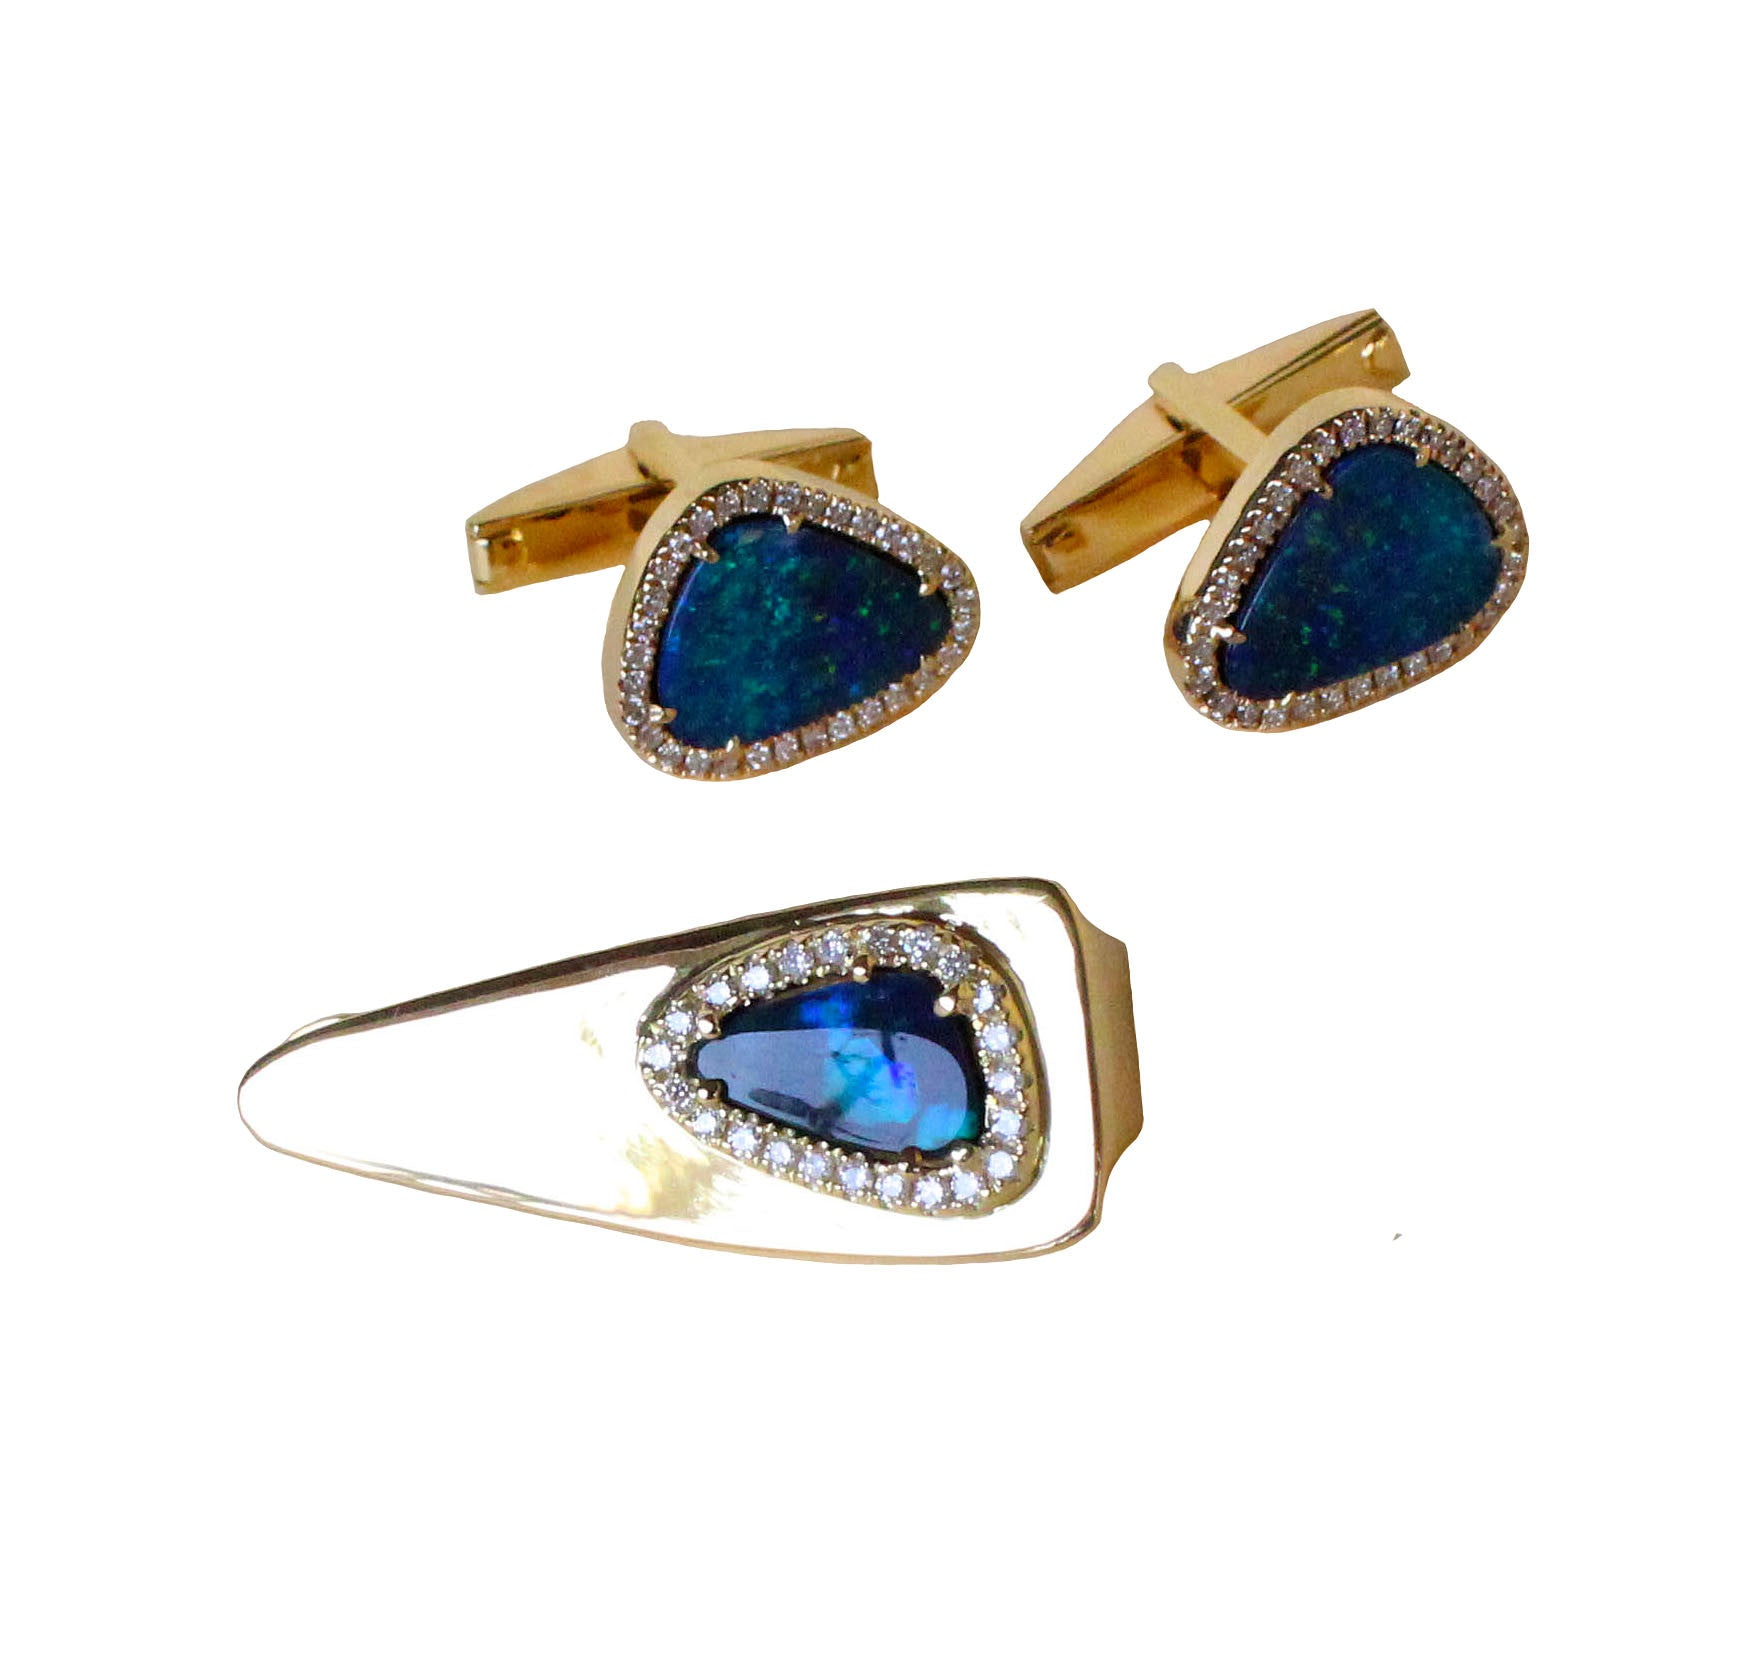 Australian black opal diamond solid 14k yellow gold tie clip - Ready to ship CLICK HERE - Sarah Hughes - 5